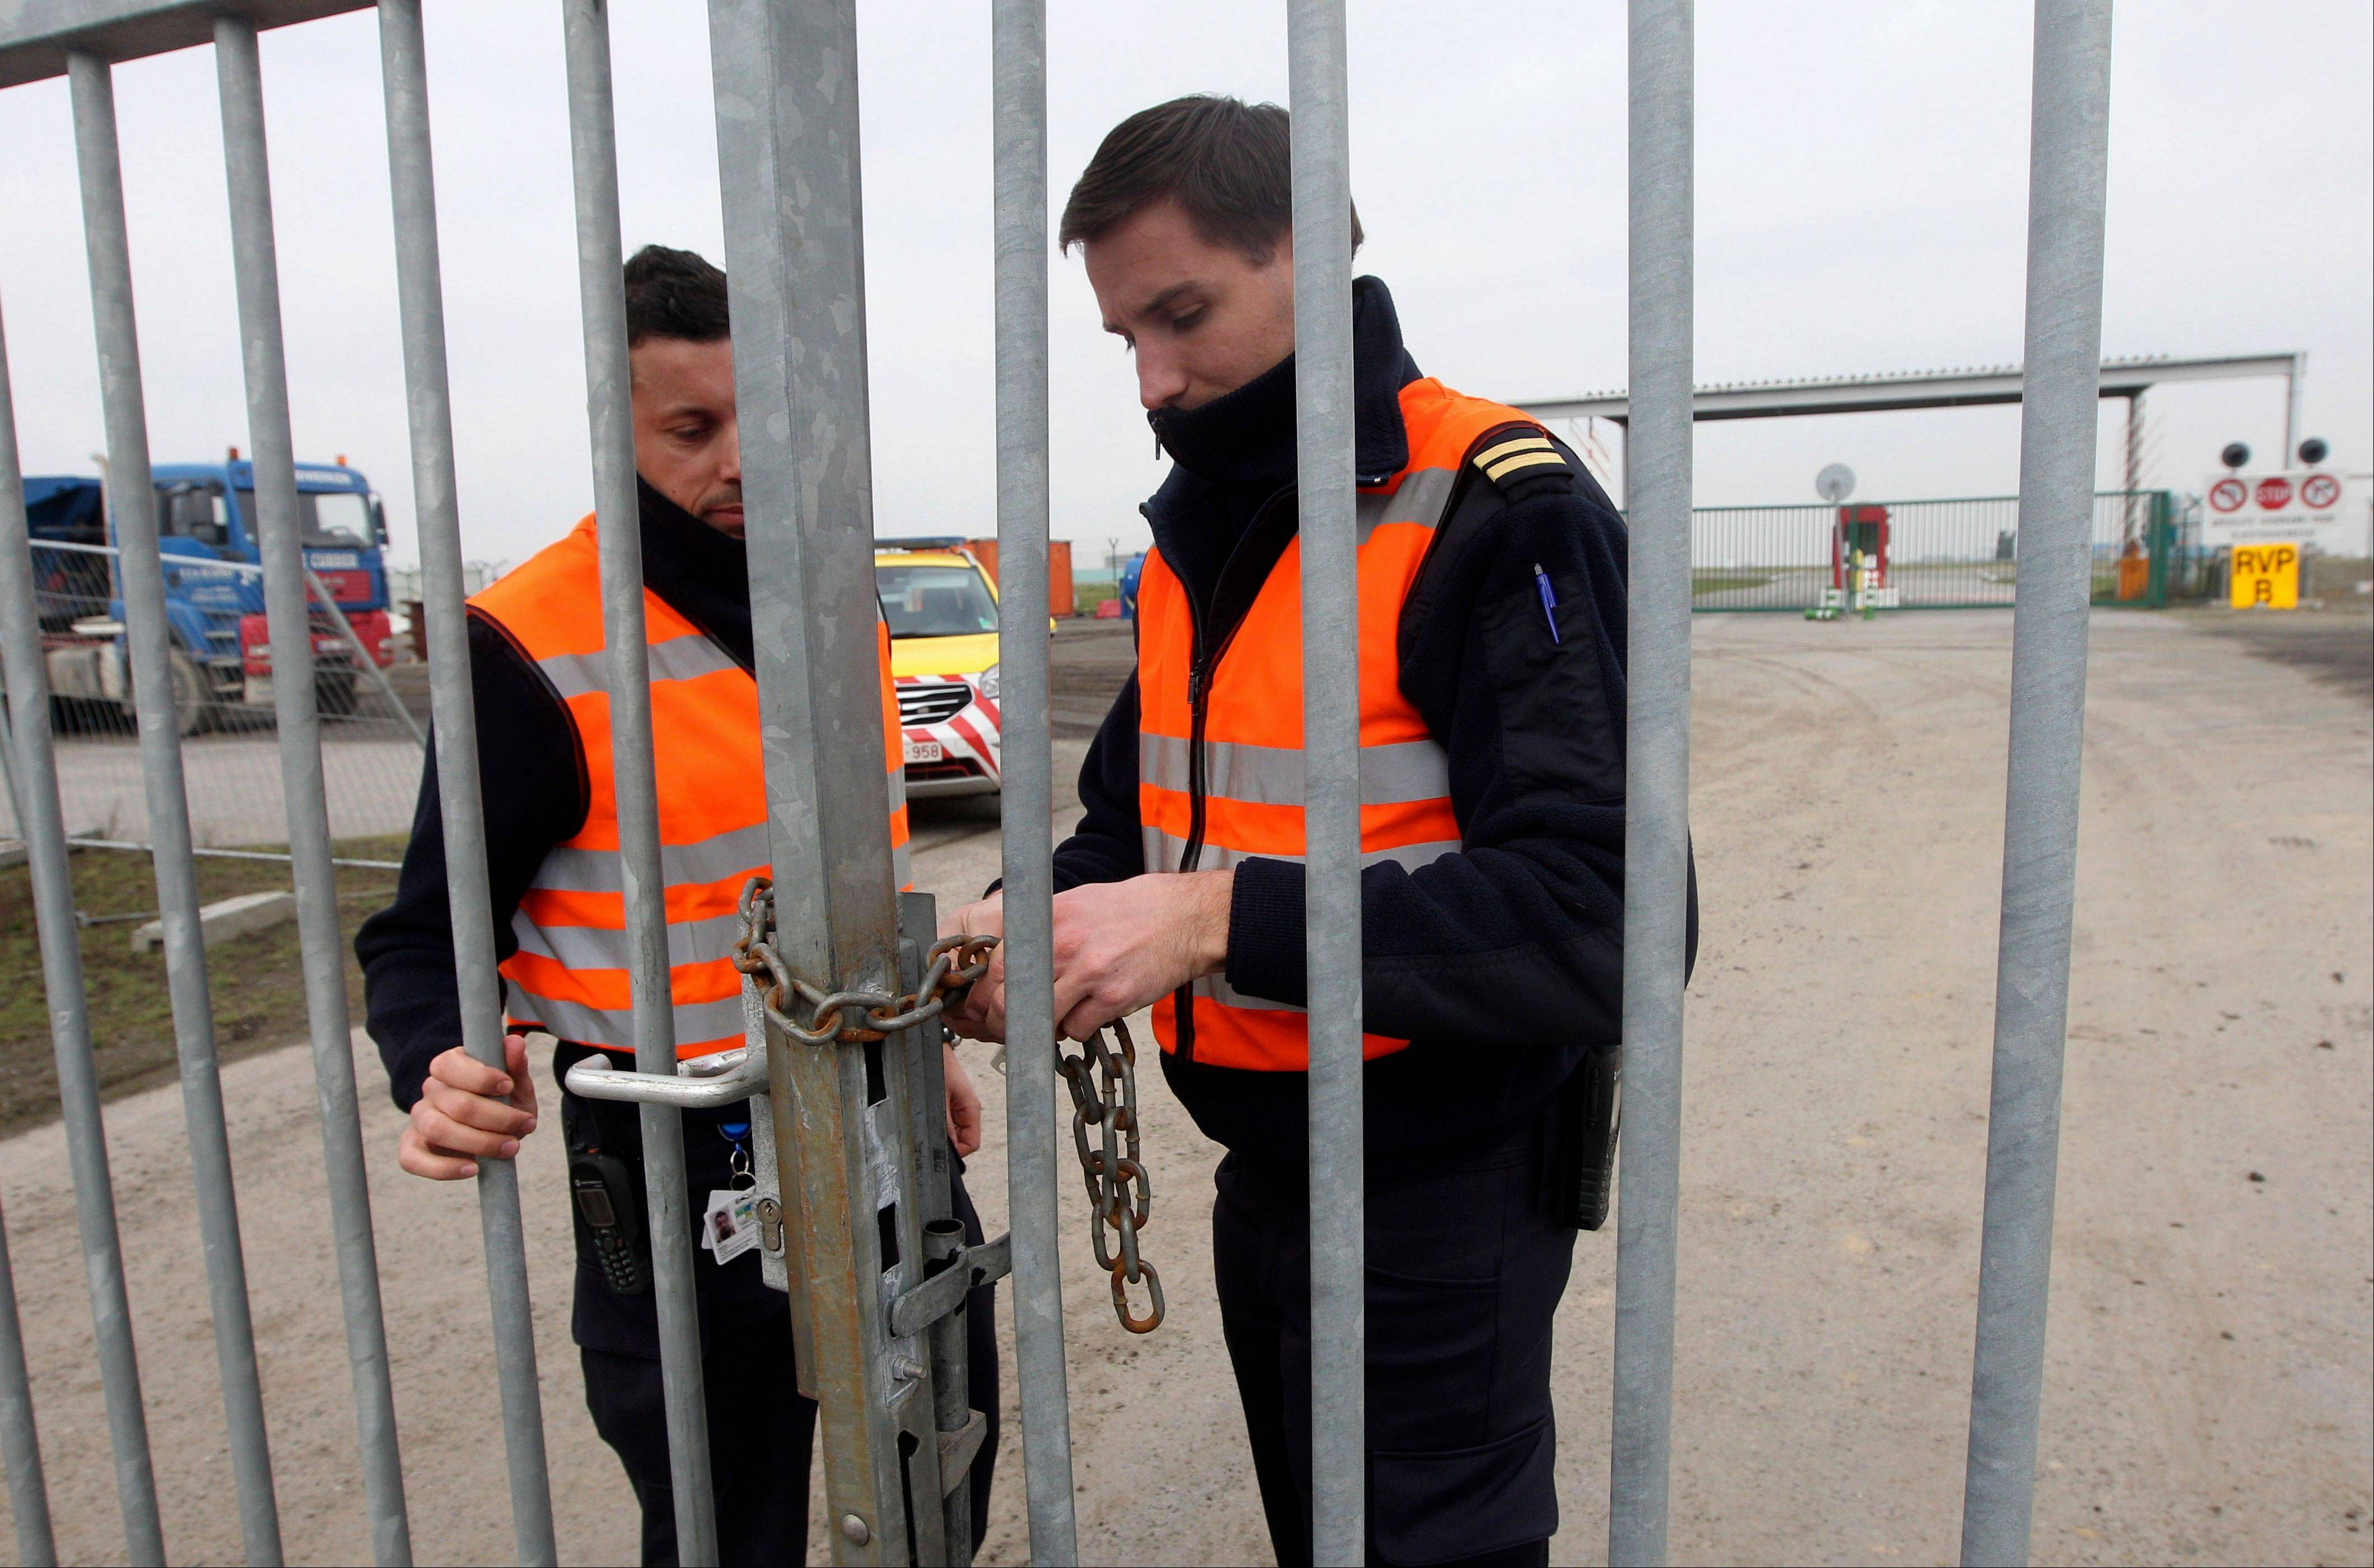 Two airport police officers use a chain to lock a gate which leads to the airport tarmac, at Brussels international airport, Tuesday, Feb. 19, 2013. Eight masked gunmen made a hole in a security fence at Brussels� international airport, drove onto the tarmac and snatched some $50 million worth of diamonds from the hold of a Swiss-bound plane without firing a shot, authorities said Tuesday.